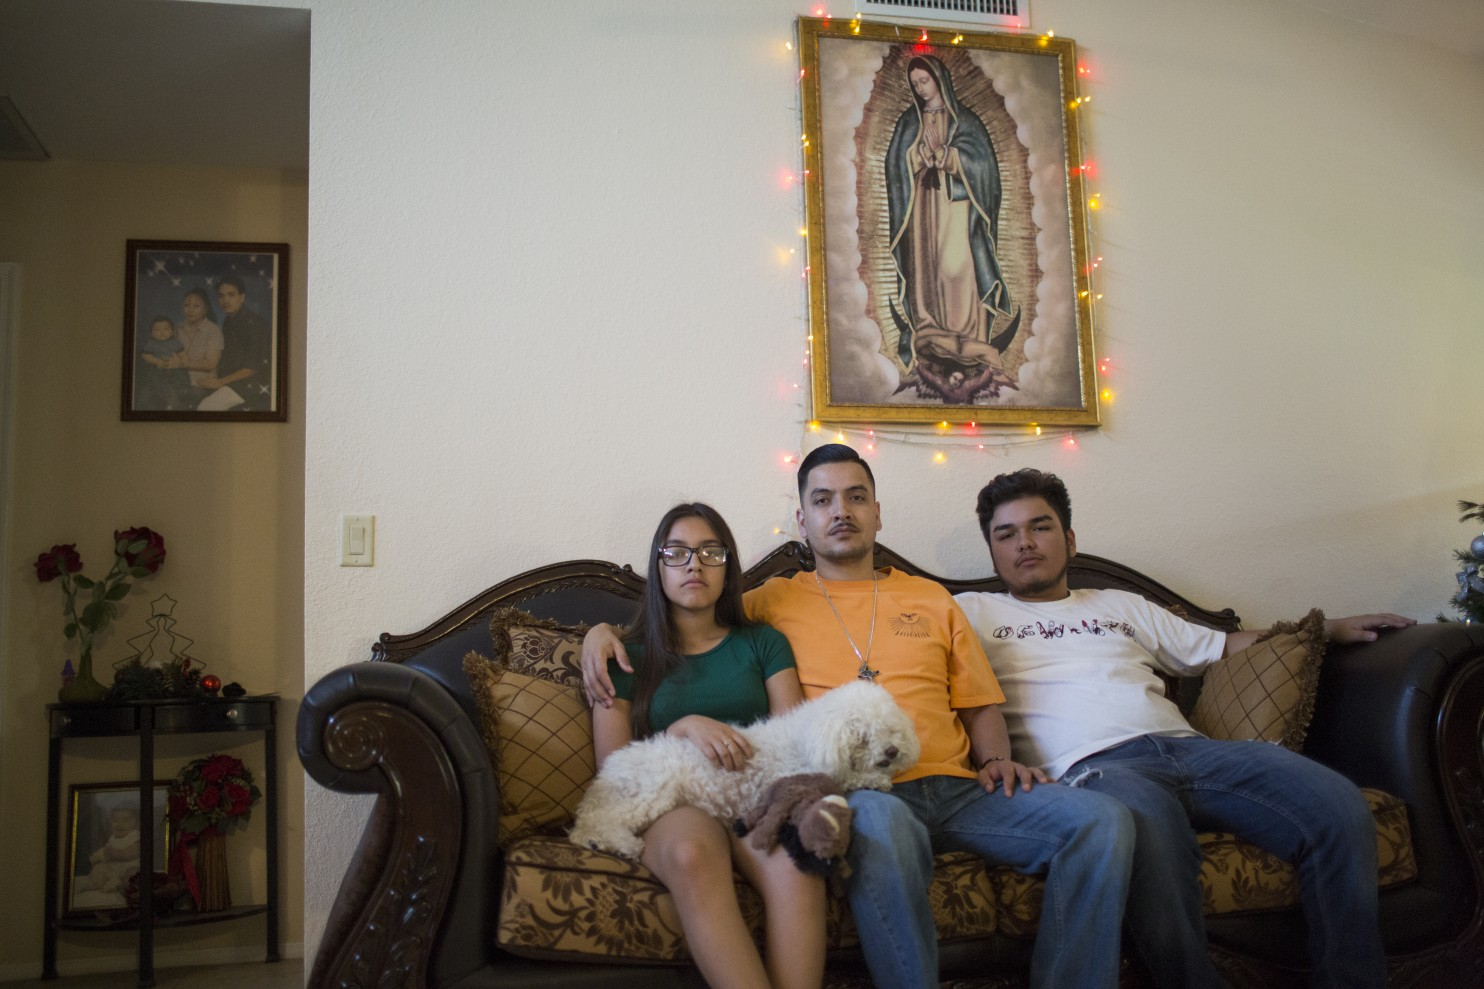 https://www.washingtonpost.com/national/i-cant-take-that-place-an-arizona-family-struggles-with-a-mothers-deportation/2017/02/27/e0b0d0de-fa0e-11e6-bf01-d47f8cf9b643_story.html?utm_term=.f07217e25945